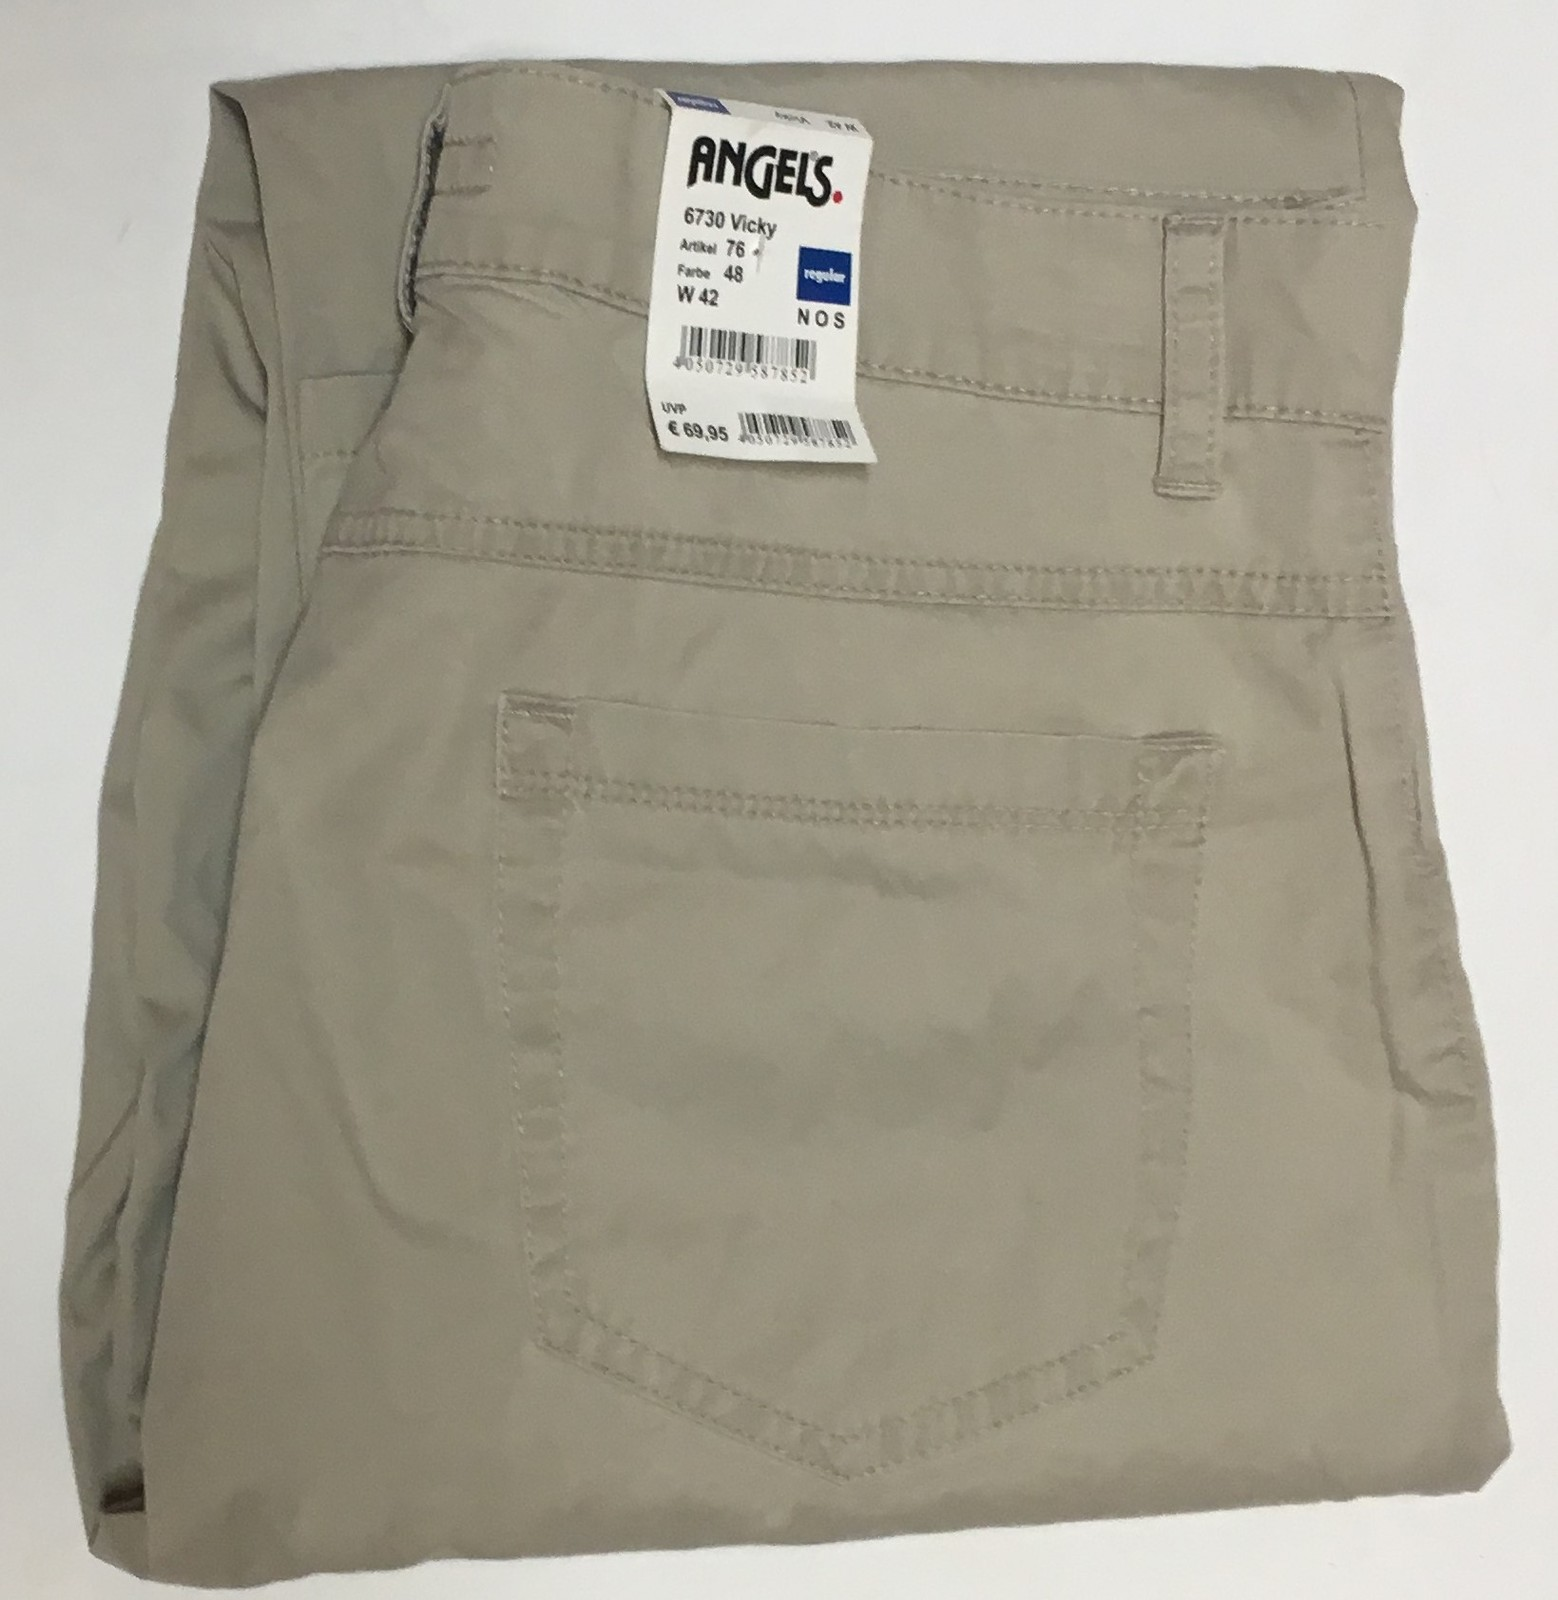 "Angels Jeans Italy Vicky Beige Waist 32"" Inseam 30"" Regular NWT image 6"